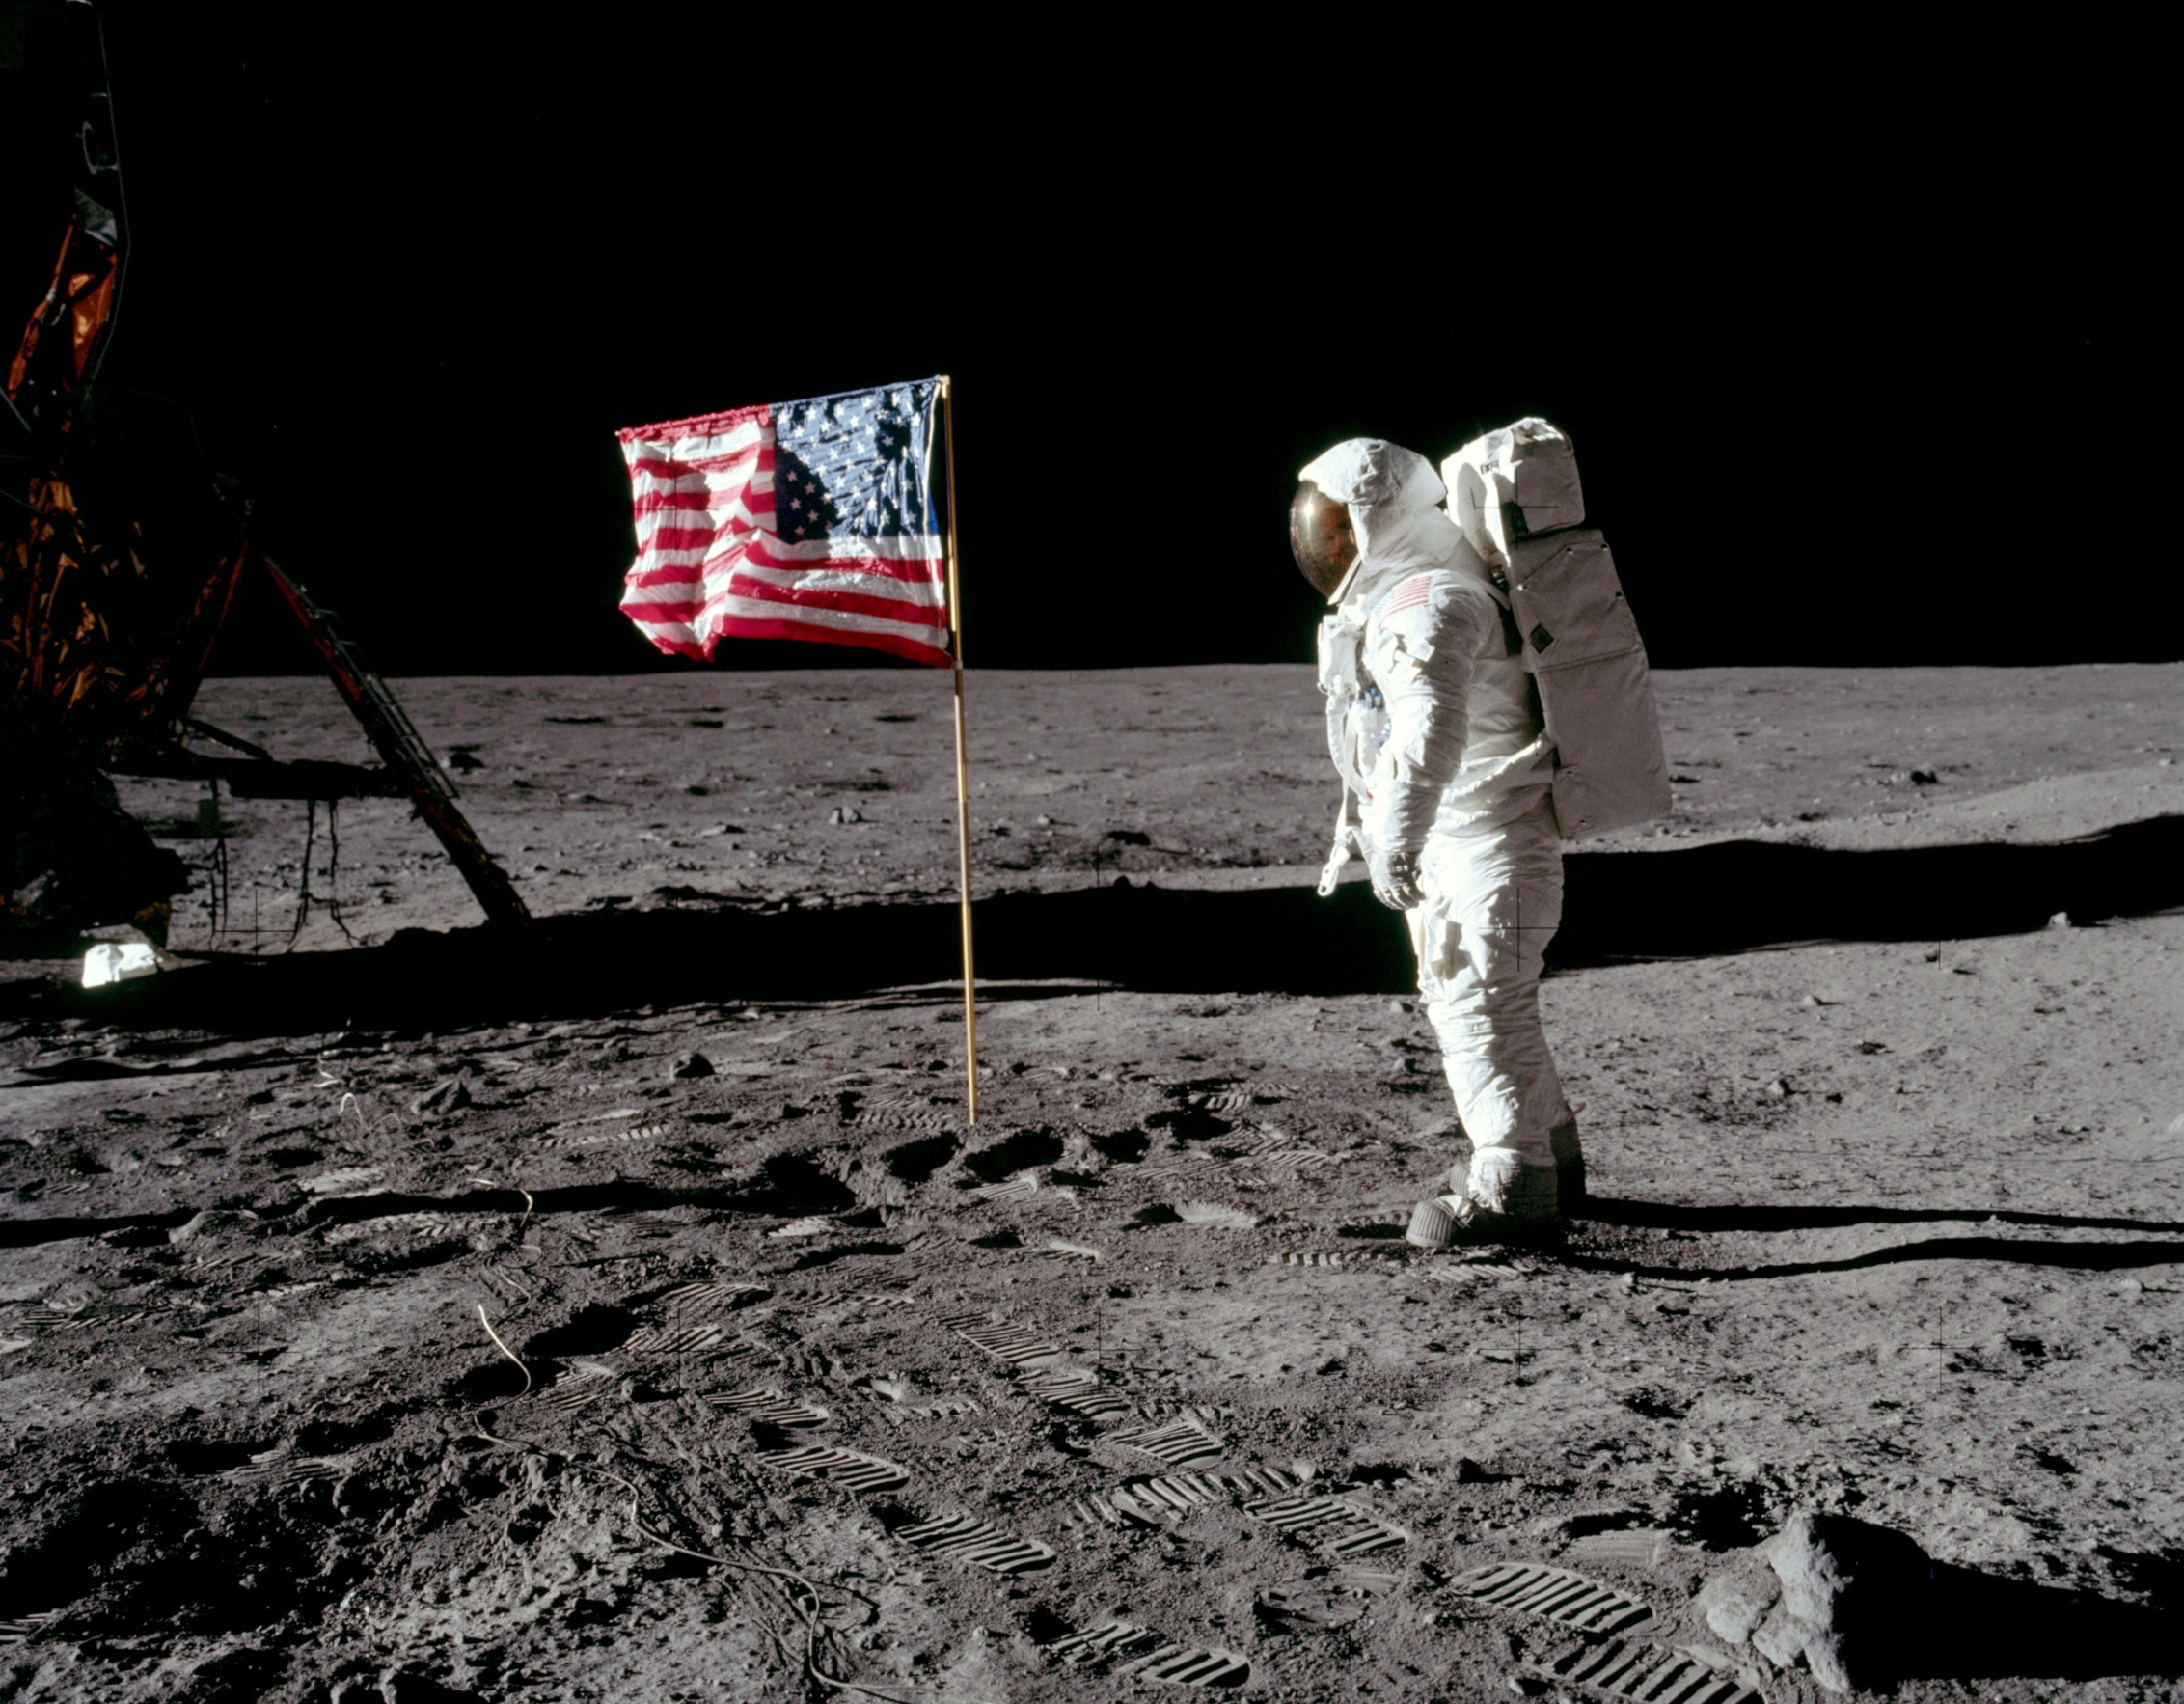 Astronaut Buzz Aldrin, lunar module pilot for Apollo 11, poses for a photograph beside the deployed United States flag during an extravehicular activity (EVA) on the moon, July 20, 1969. The lunar module (LM) is on the left, and the footprints of the astronauts are visible in the soil. Neil Armstrong/NASA/Handout via REUTERS   ATTENTION EDITORS - THIS IMAGE HAS BEEN SUPPLIED BY A THIRD PARTY - RC13872C90A0